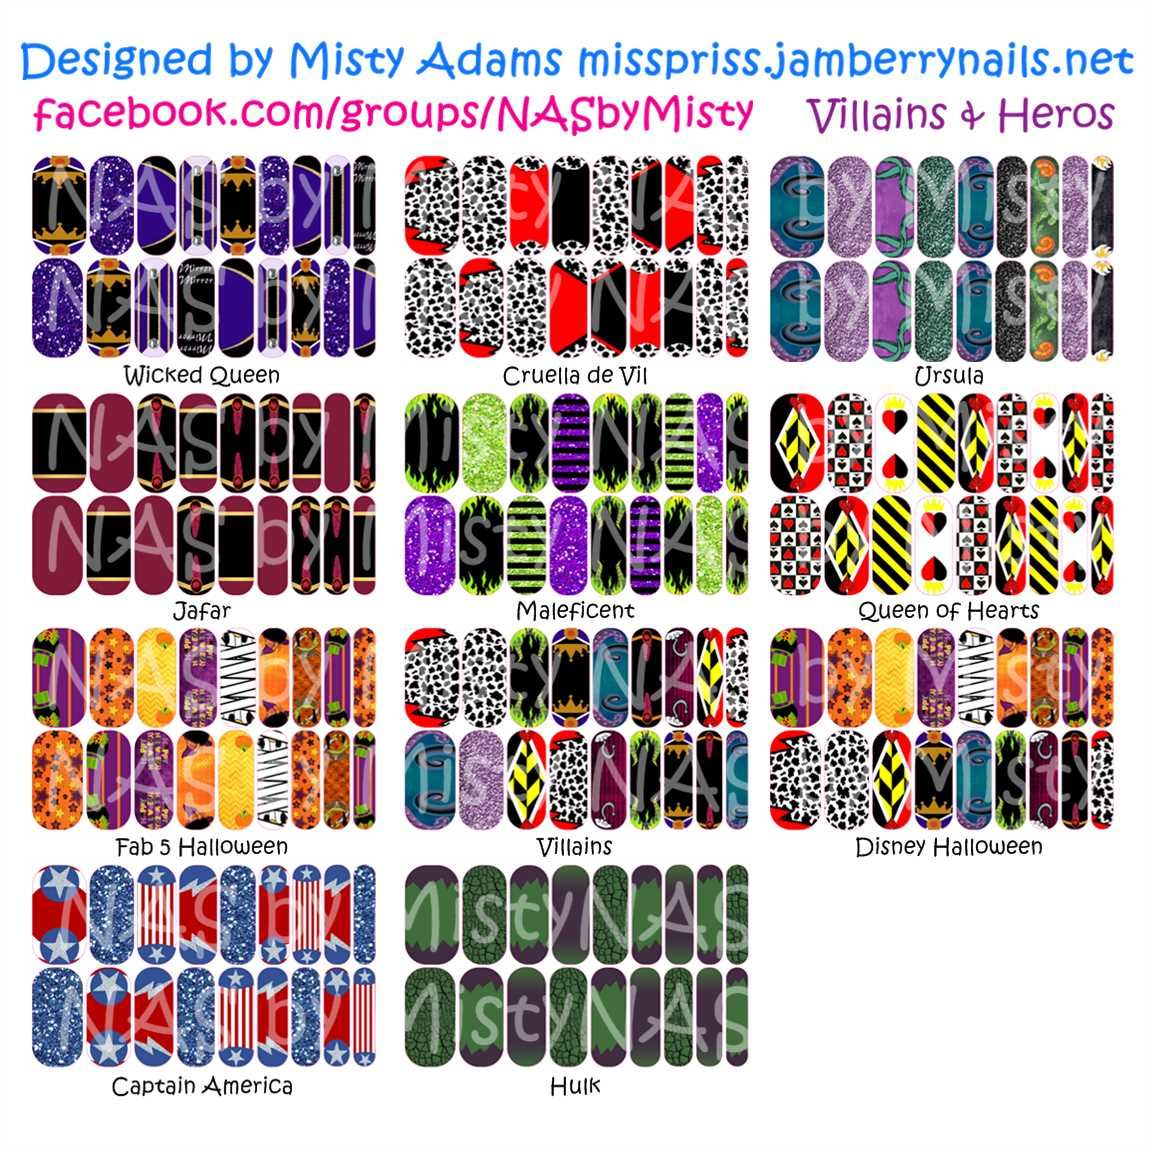 Custom designed Disney Villains and Heroes inspired Jamberry Nail wraps. Available exclusively through me at facebook.com/groups/NASbyMisty